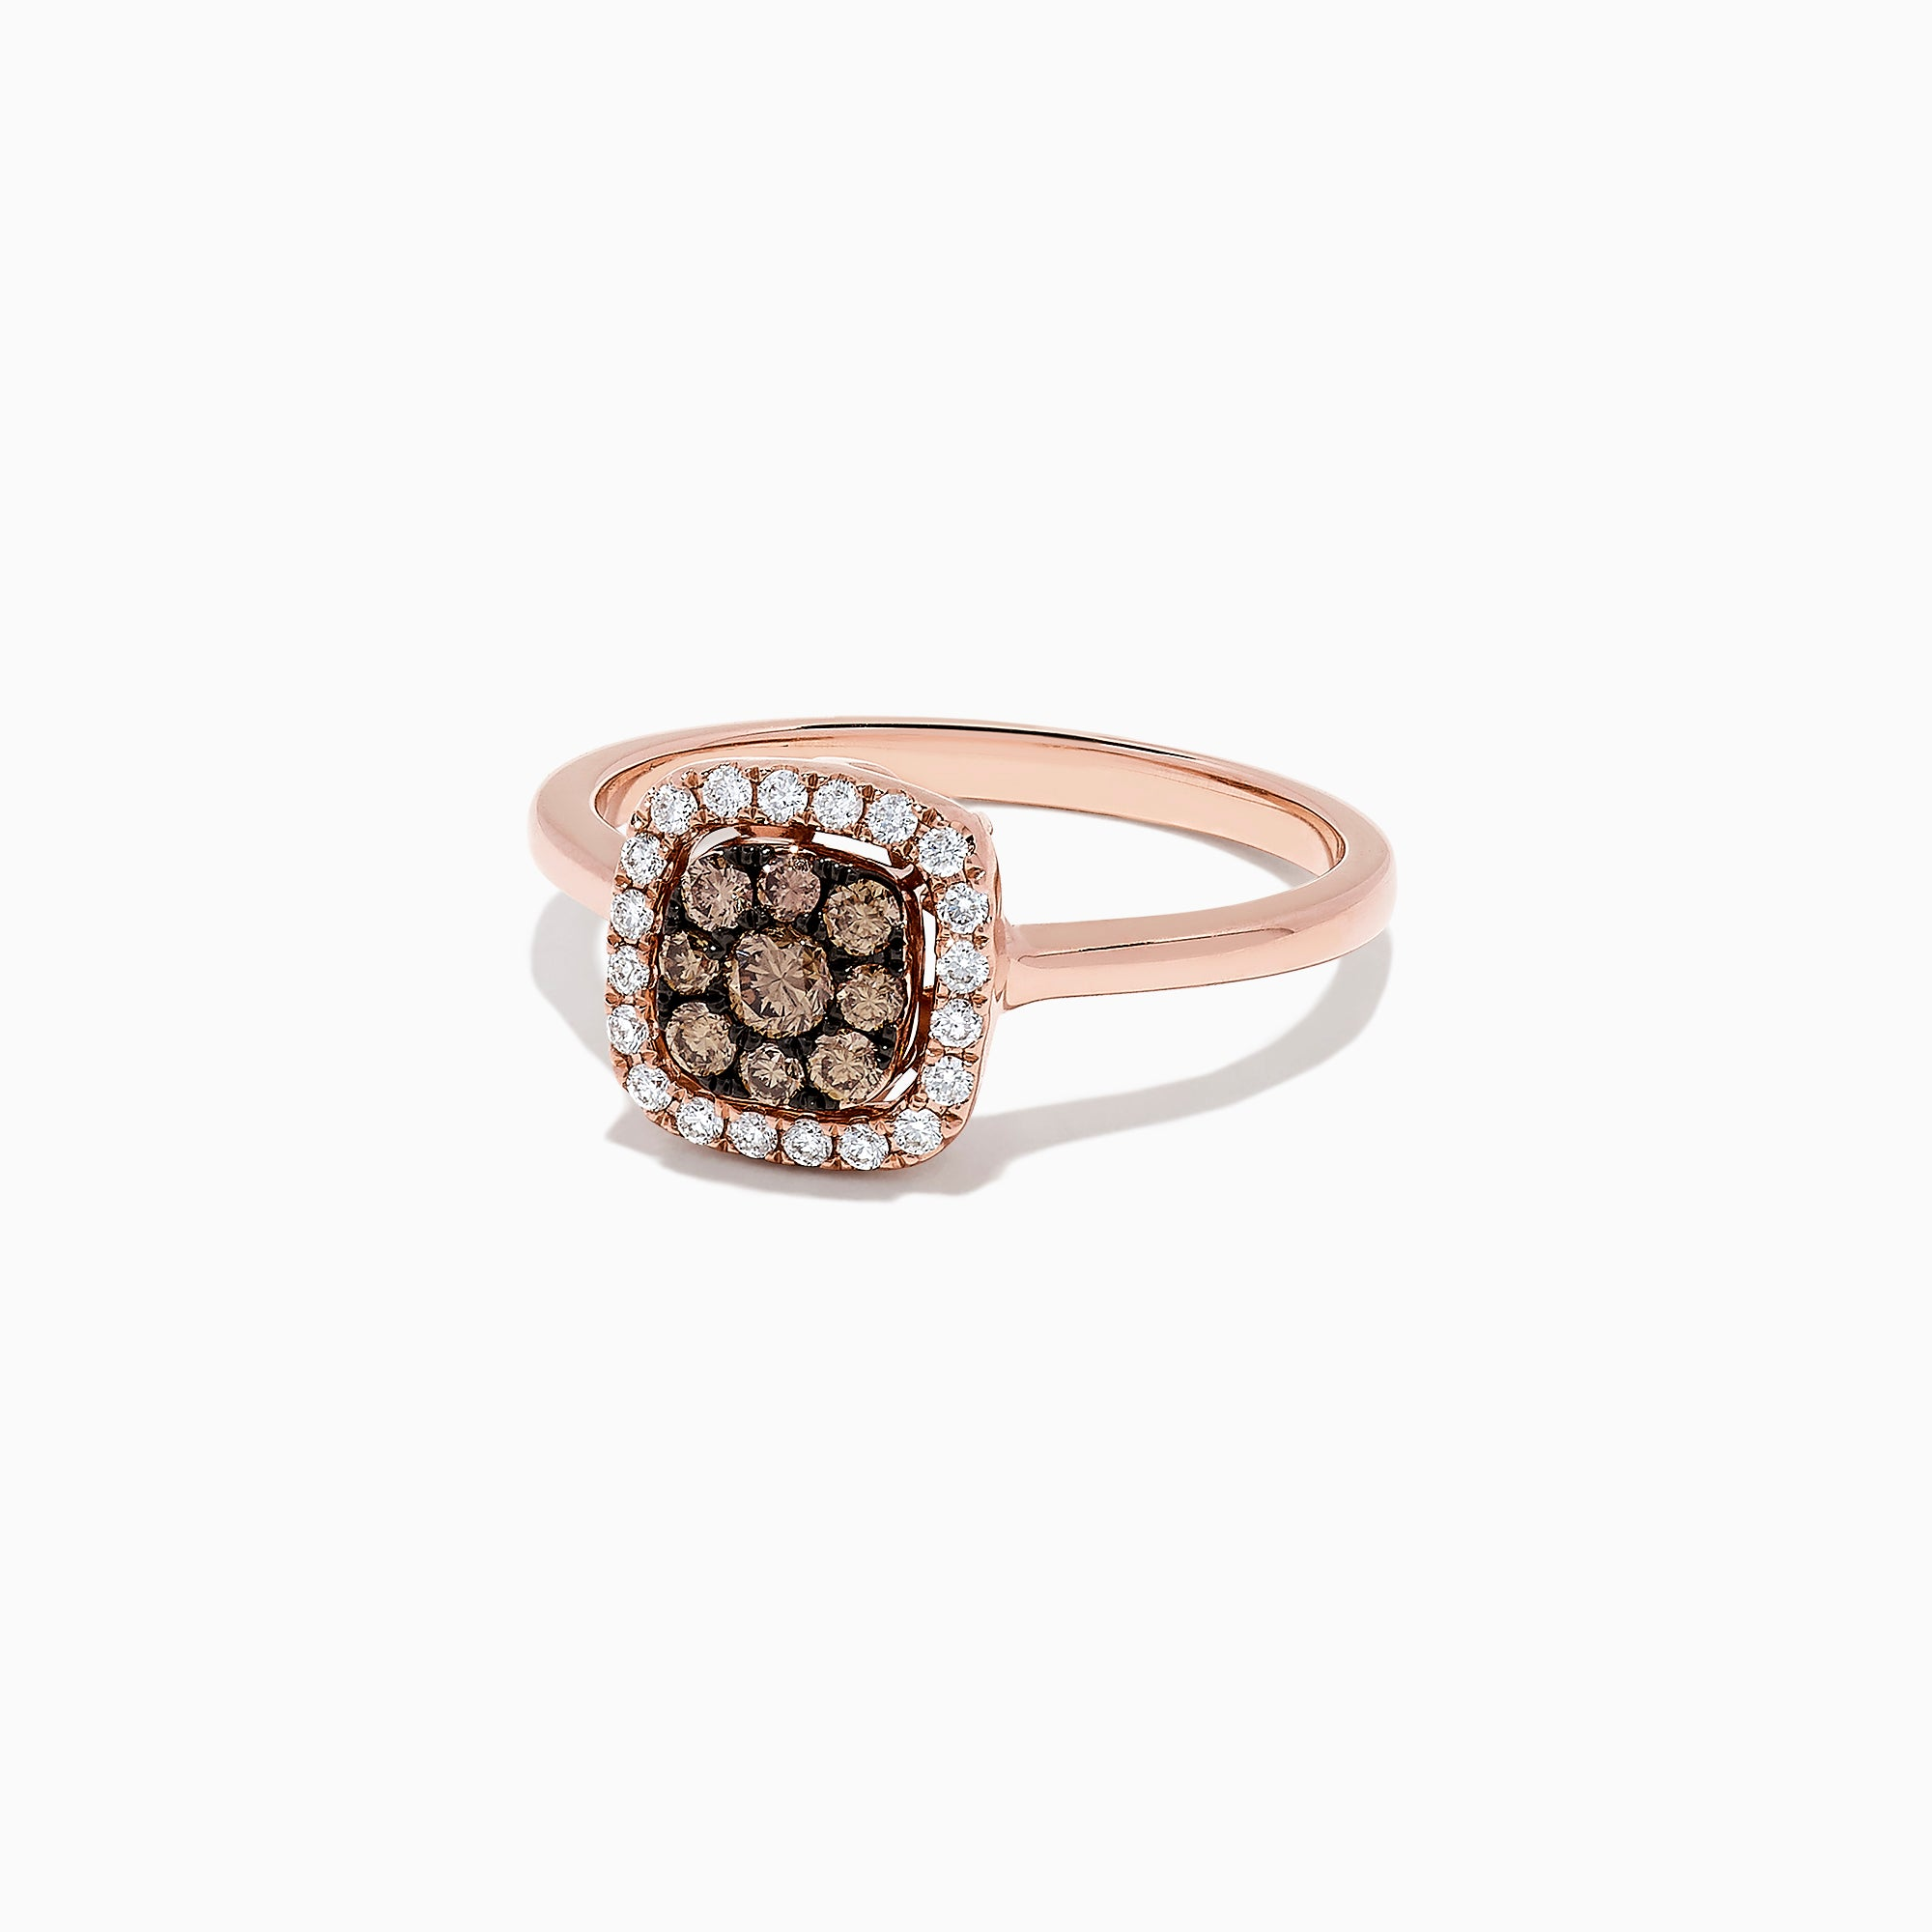 Effy 14K Rose Gold Espresso and White Diamond Ring, 0.45 TCW